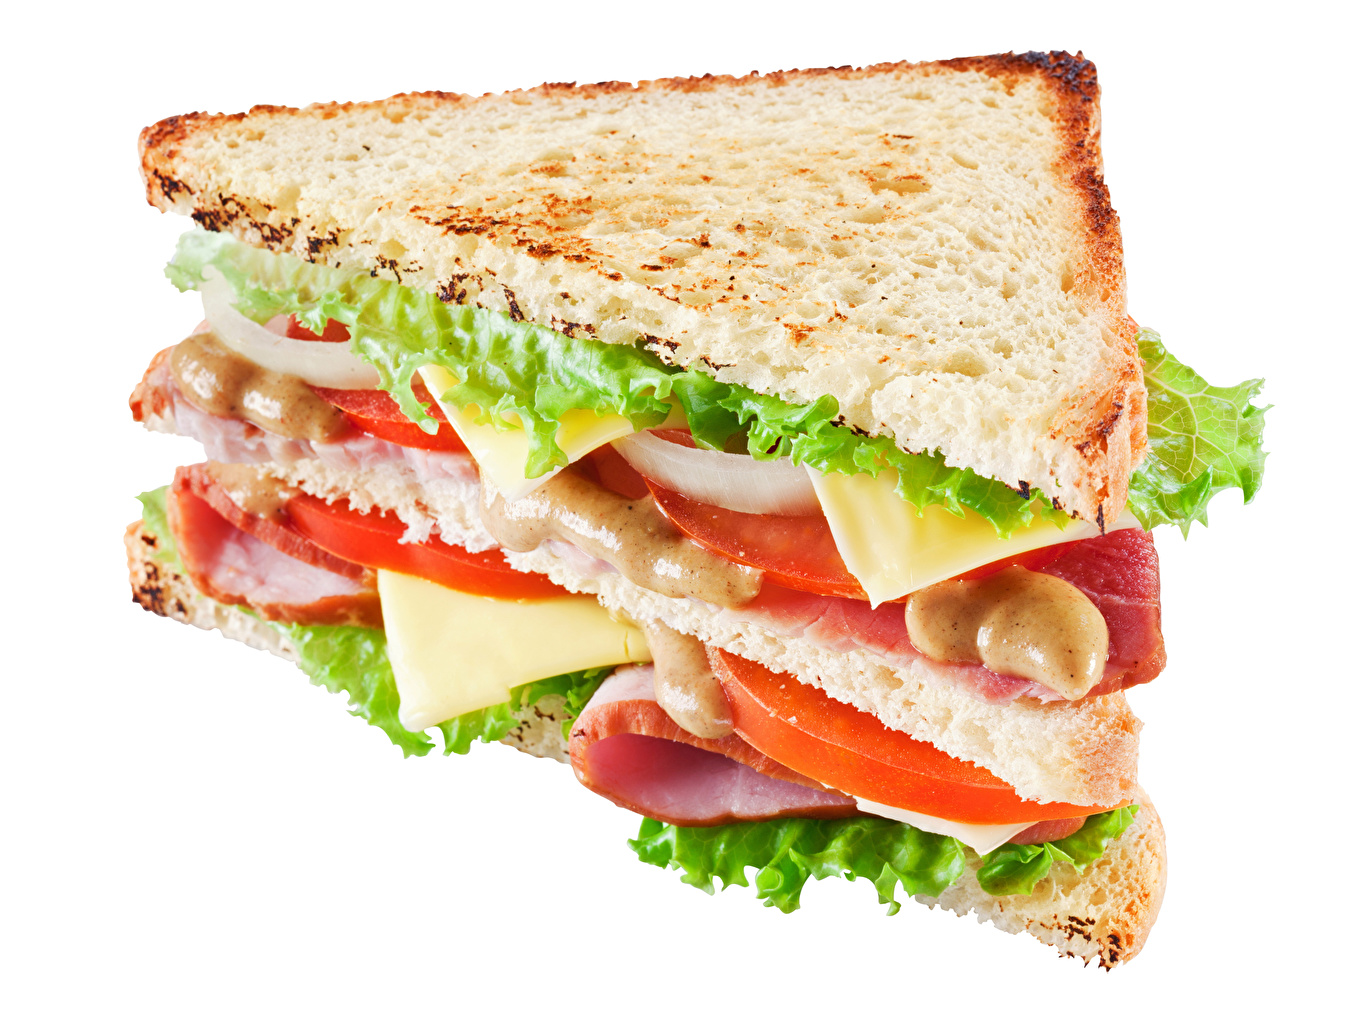 Photos Sandwich Bread Fast food Food Closeup White background